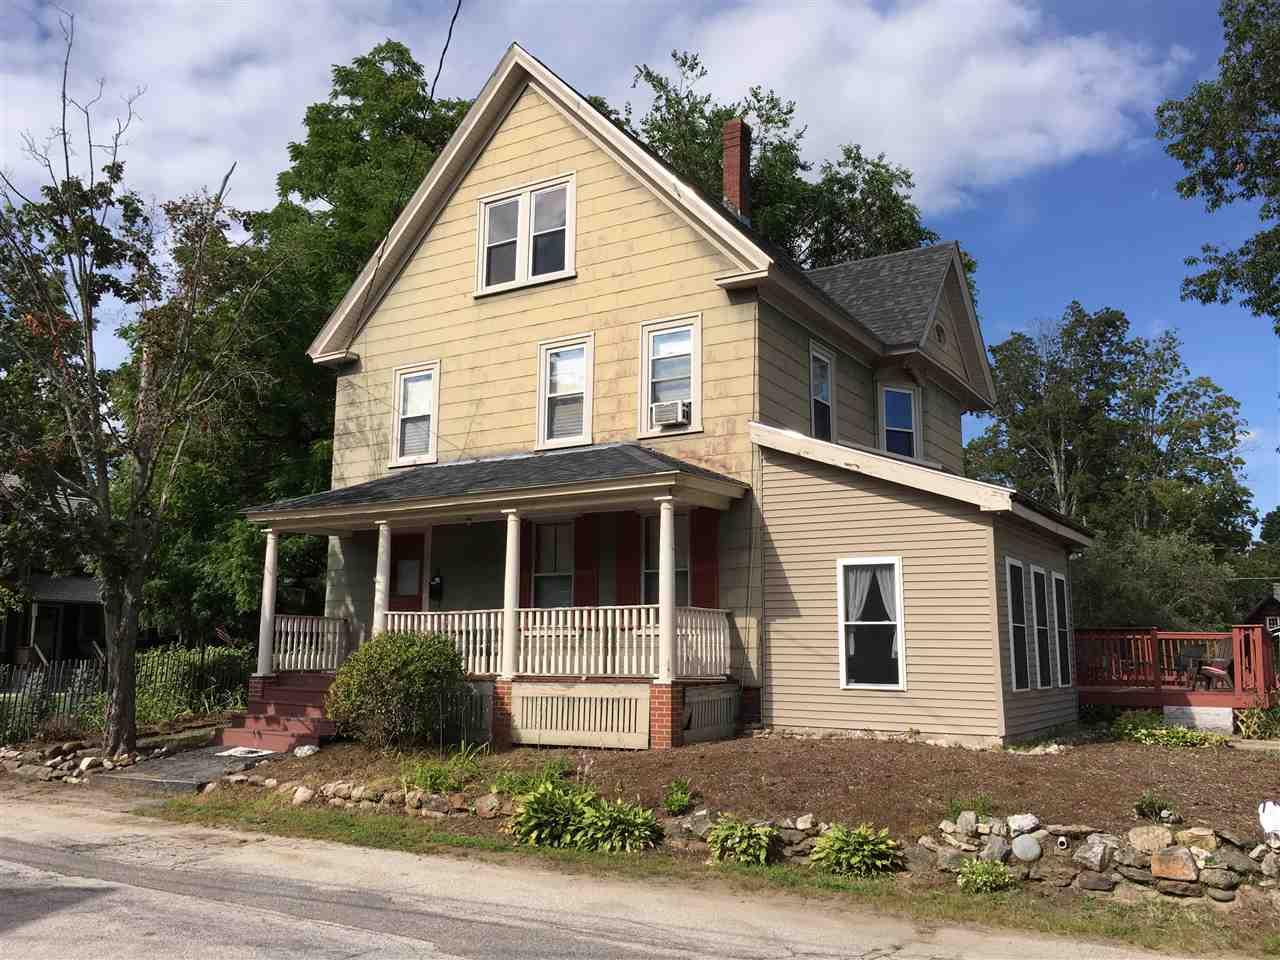 7 Glen St Concord Nh Mls 4652627 Better Homes And Gardens Real Estate